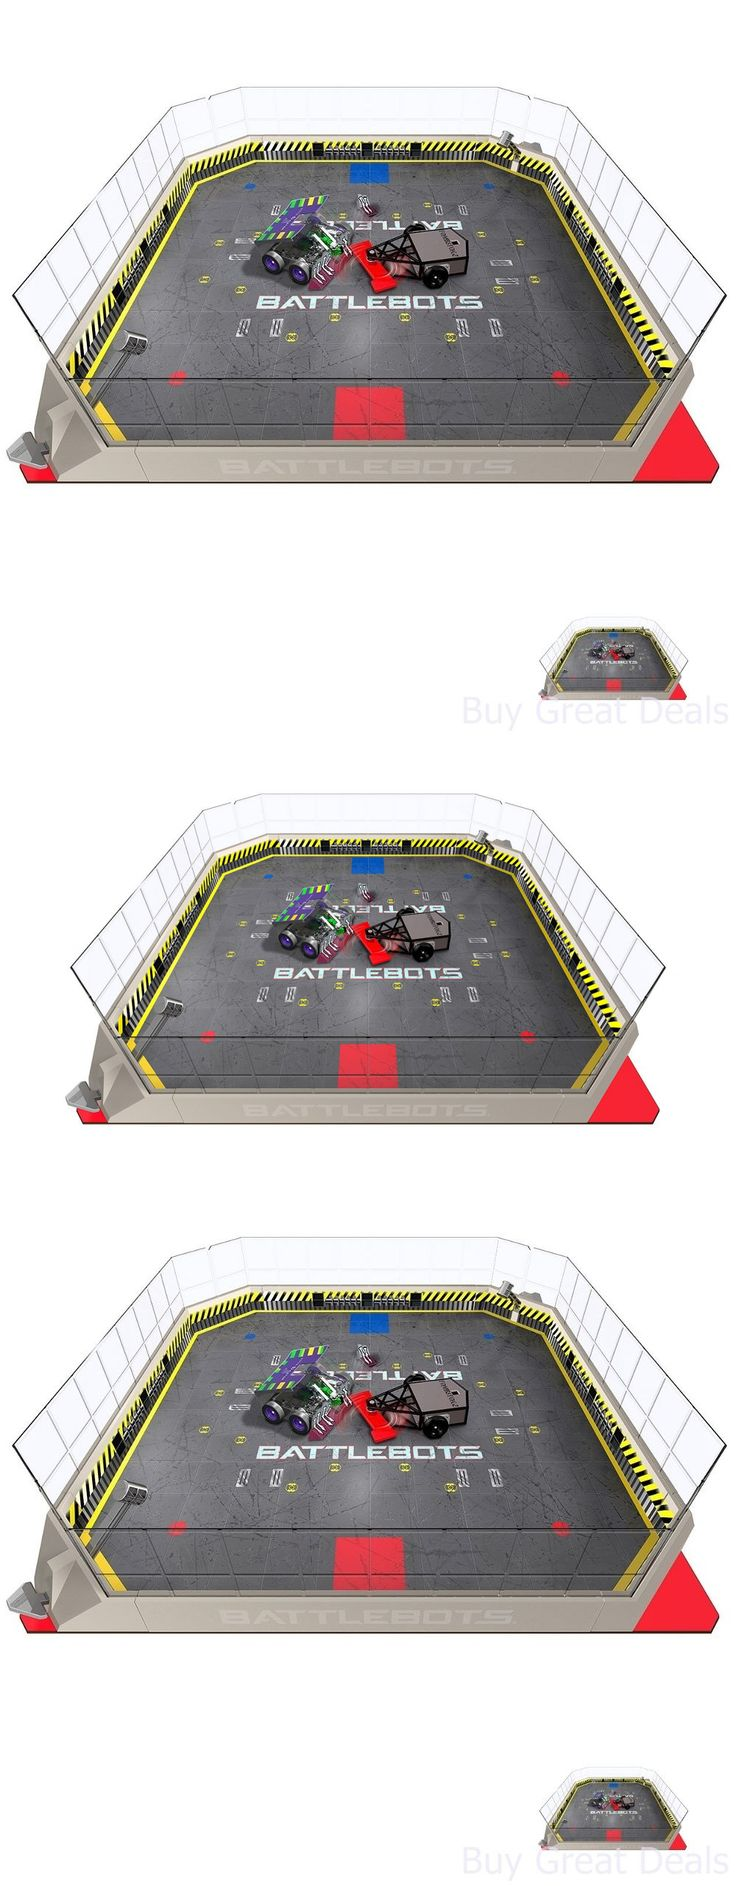 Micropets 52341: Hexbug Battlebots Arena Playset, Fold Out Game Board Remote Control Ir Play Set -> BUY IT NOW ONLY: $108.64 on eBay!